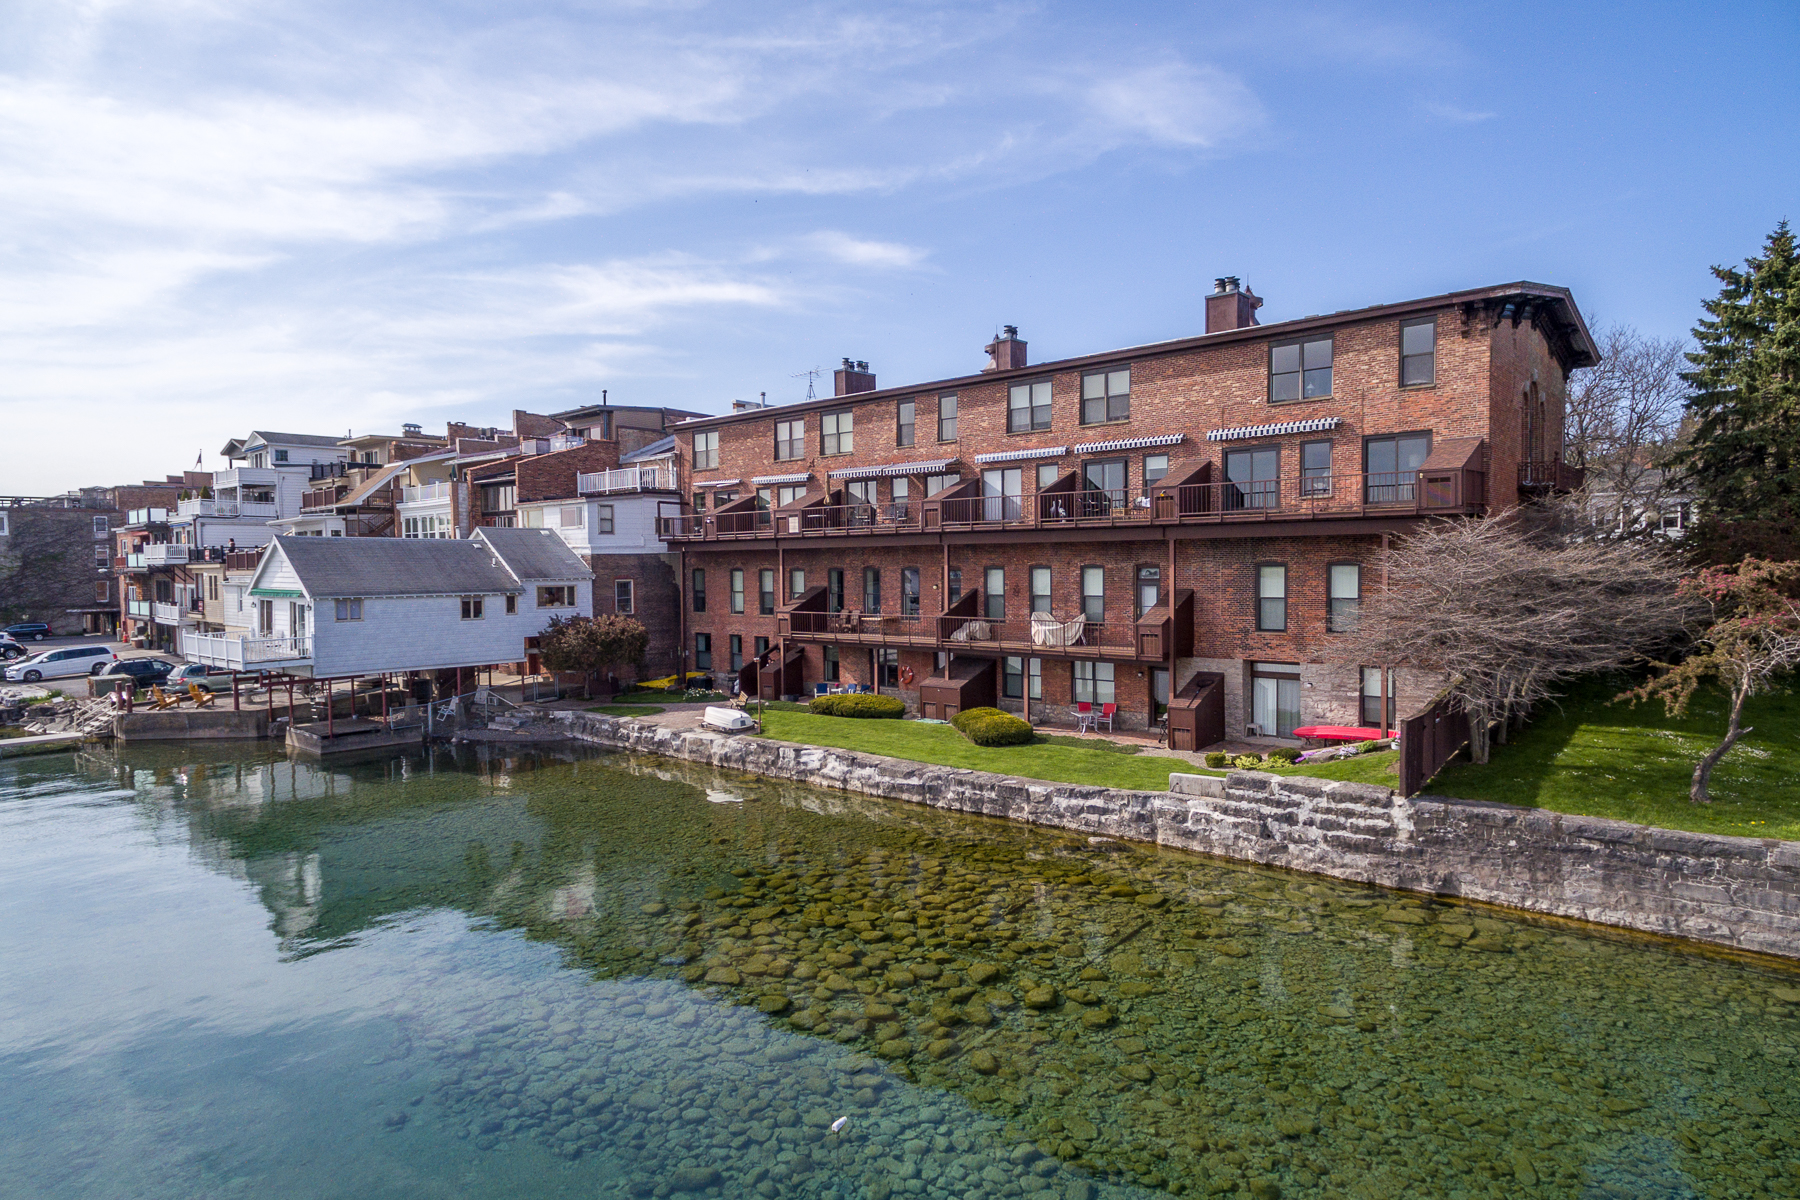 Single Family Home for Sale at Waterfront Condo 84 E Genesee St Skaneateles, New York 13152 United States